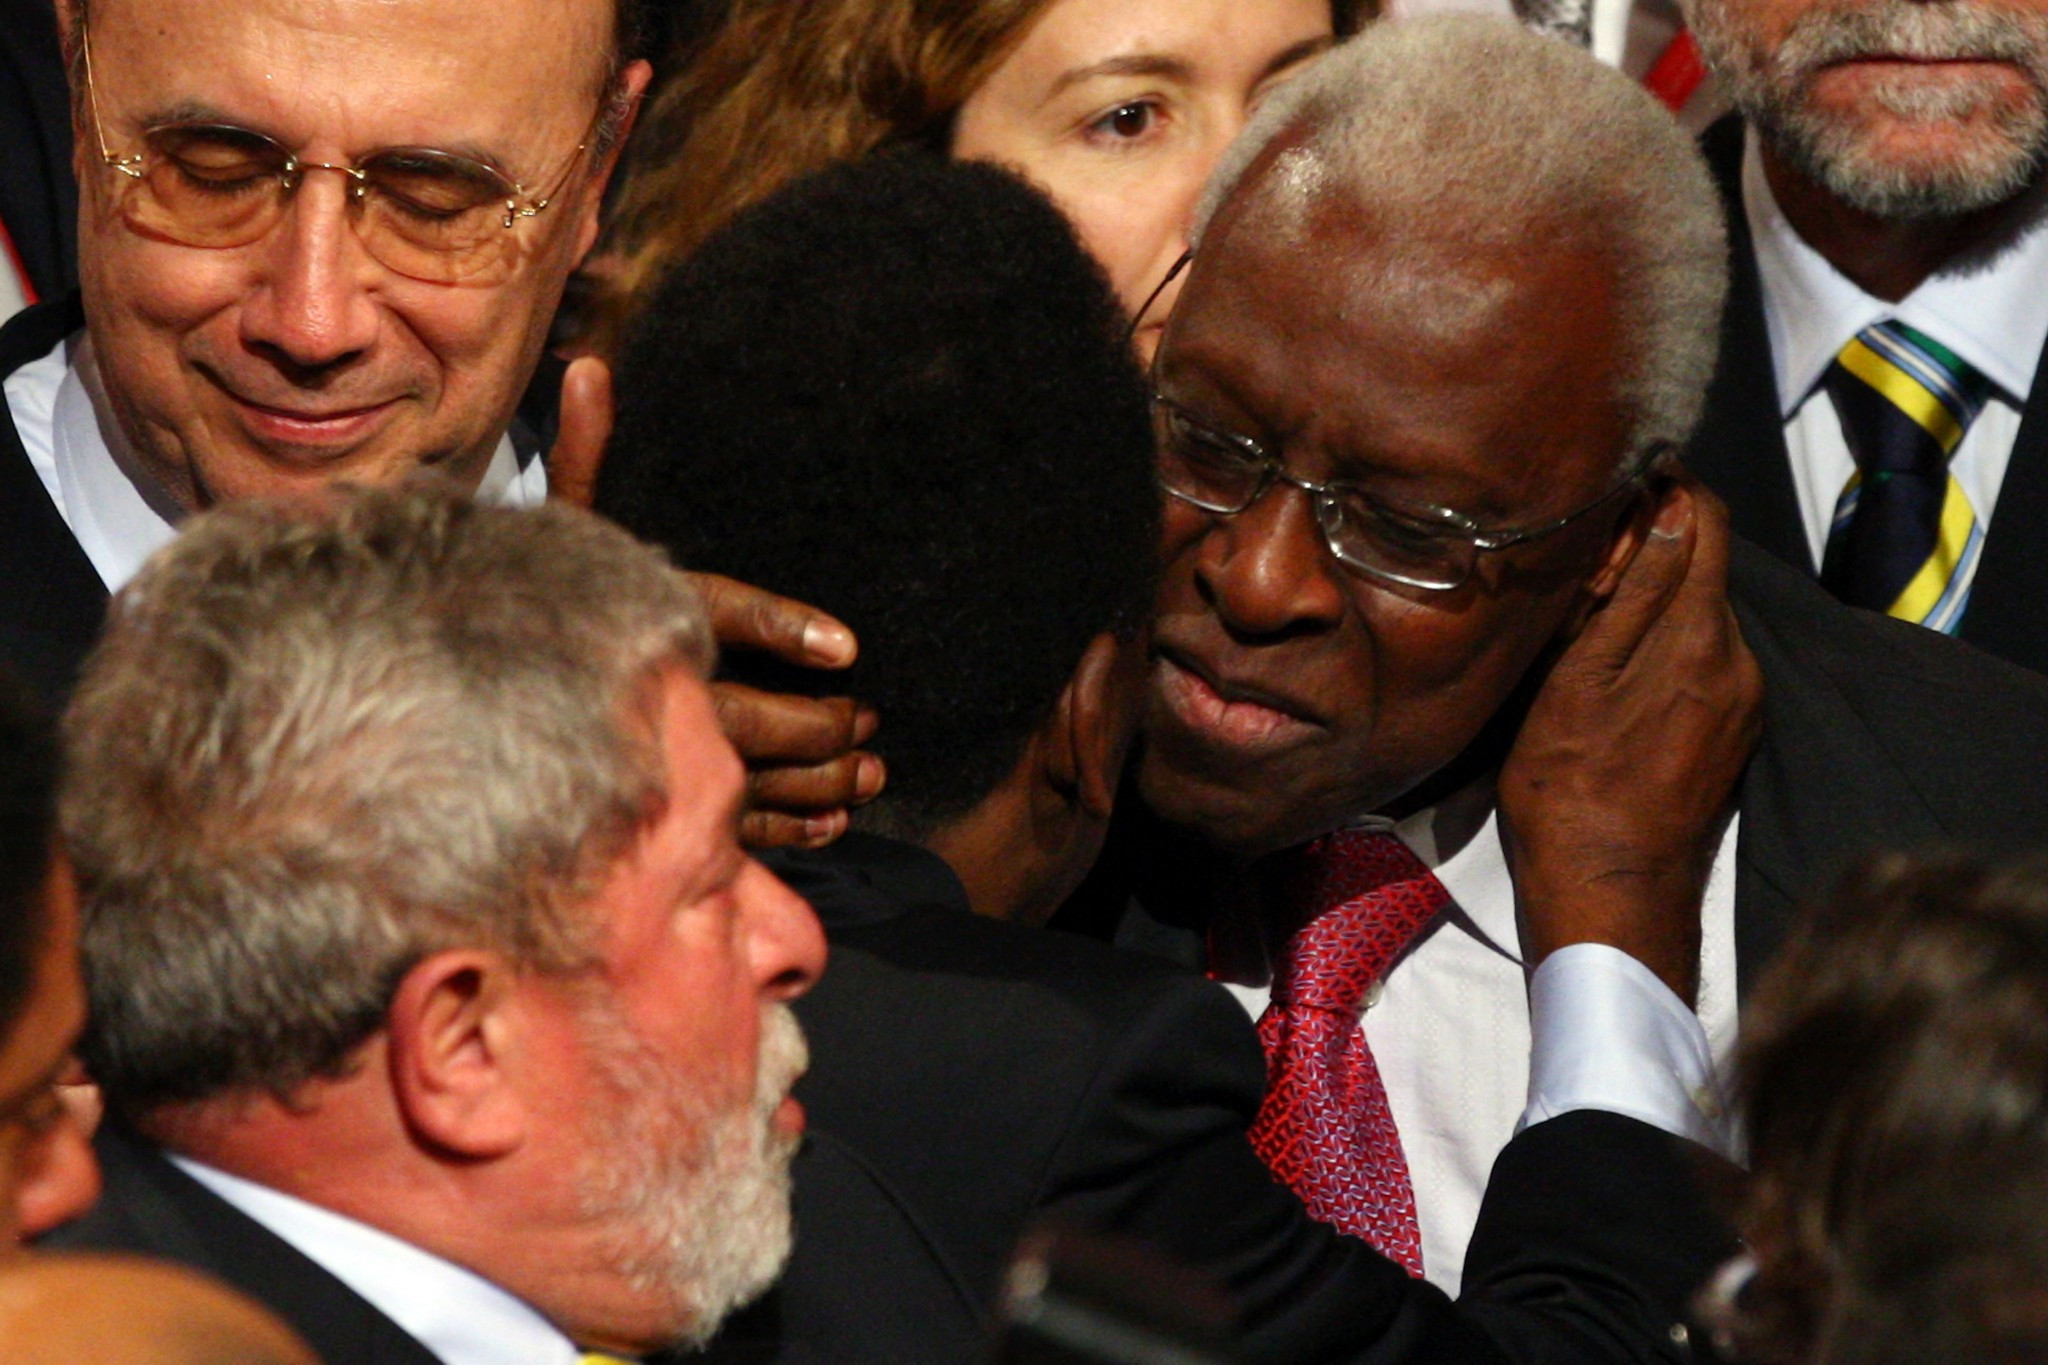 Then IAAF President Lamine Diack hugs Pelé after Rio de Janeiro were awarded the 2016 Olympic and Paralympic Games at the IOC Session in Copenhagen in 2009 ©Getty Images